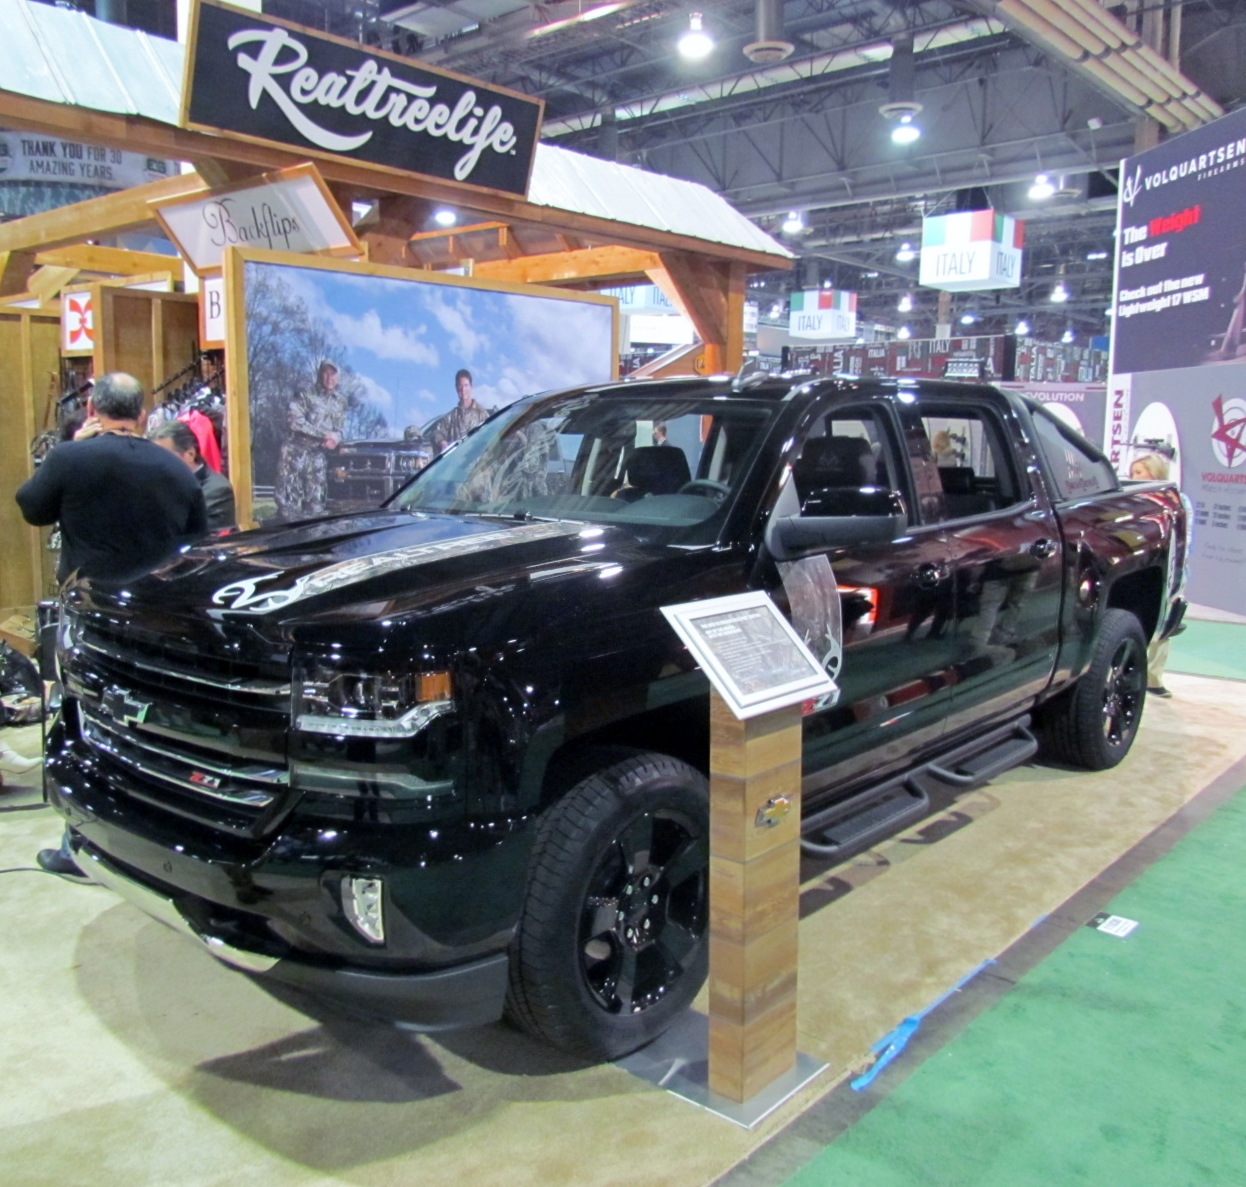 Silverado Realtree Edition >> Chevy Reveals 2016 Silverado Realtree Edition | OutdoorHub